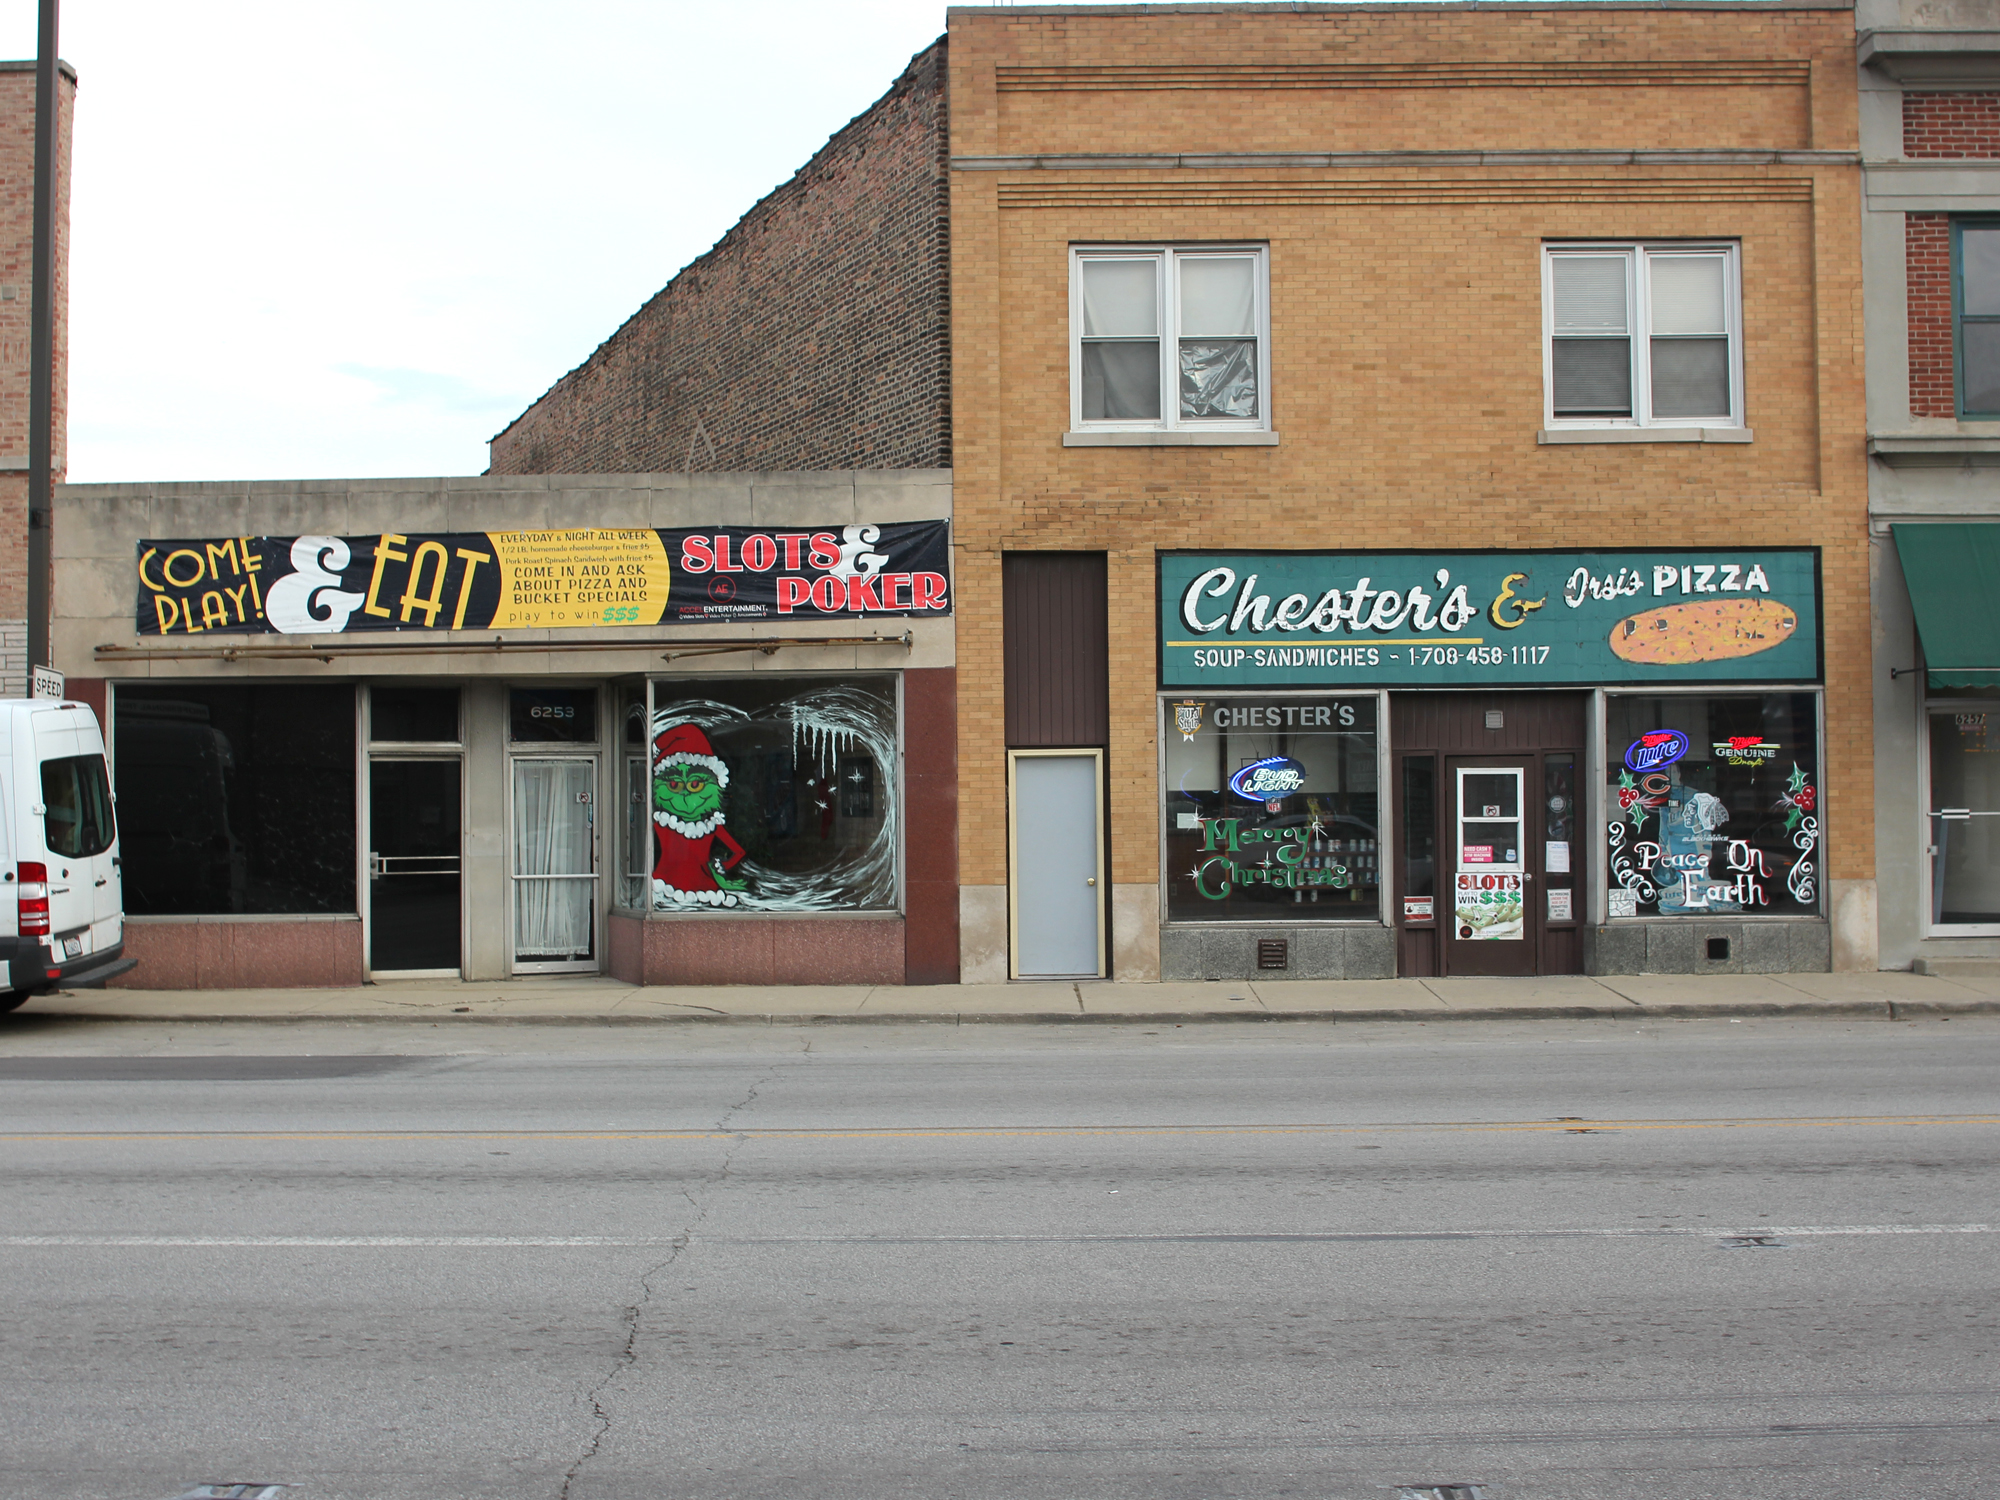 CHICAGO HISTORY IN A PIZZA: CHESTER'S & ORSI'S IN SUMMIT